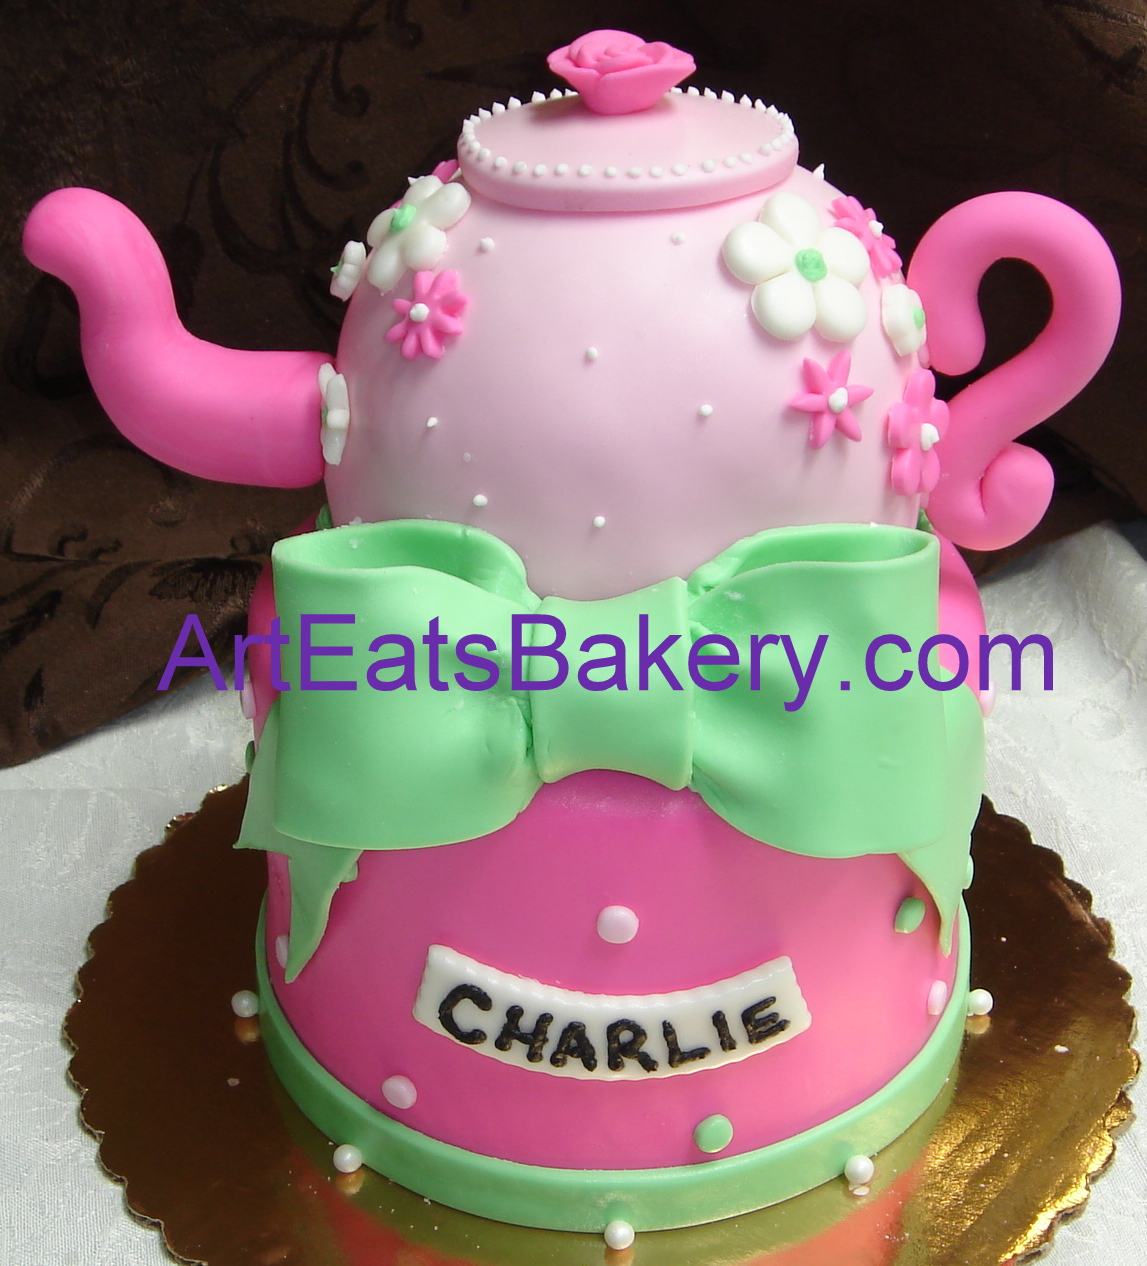 Custom designed girls teapot two tier pink and green fondant birthday cake picture.jpg